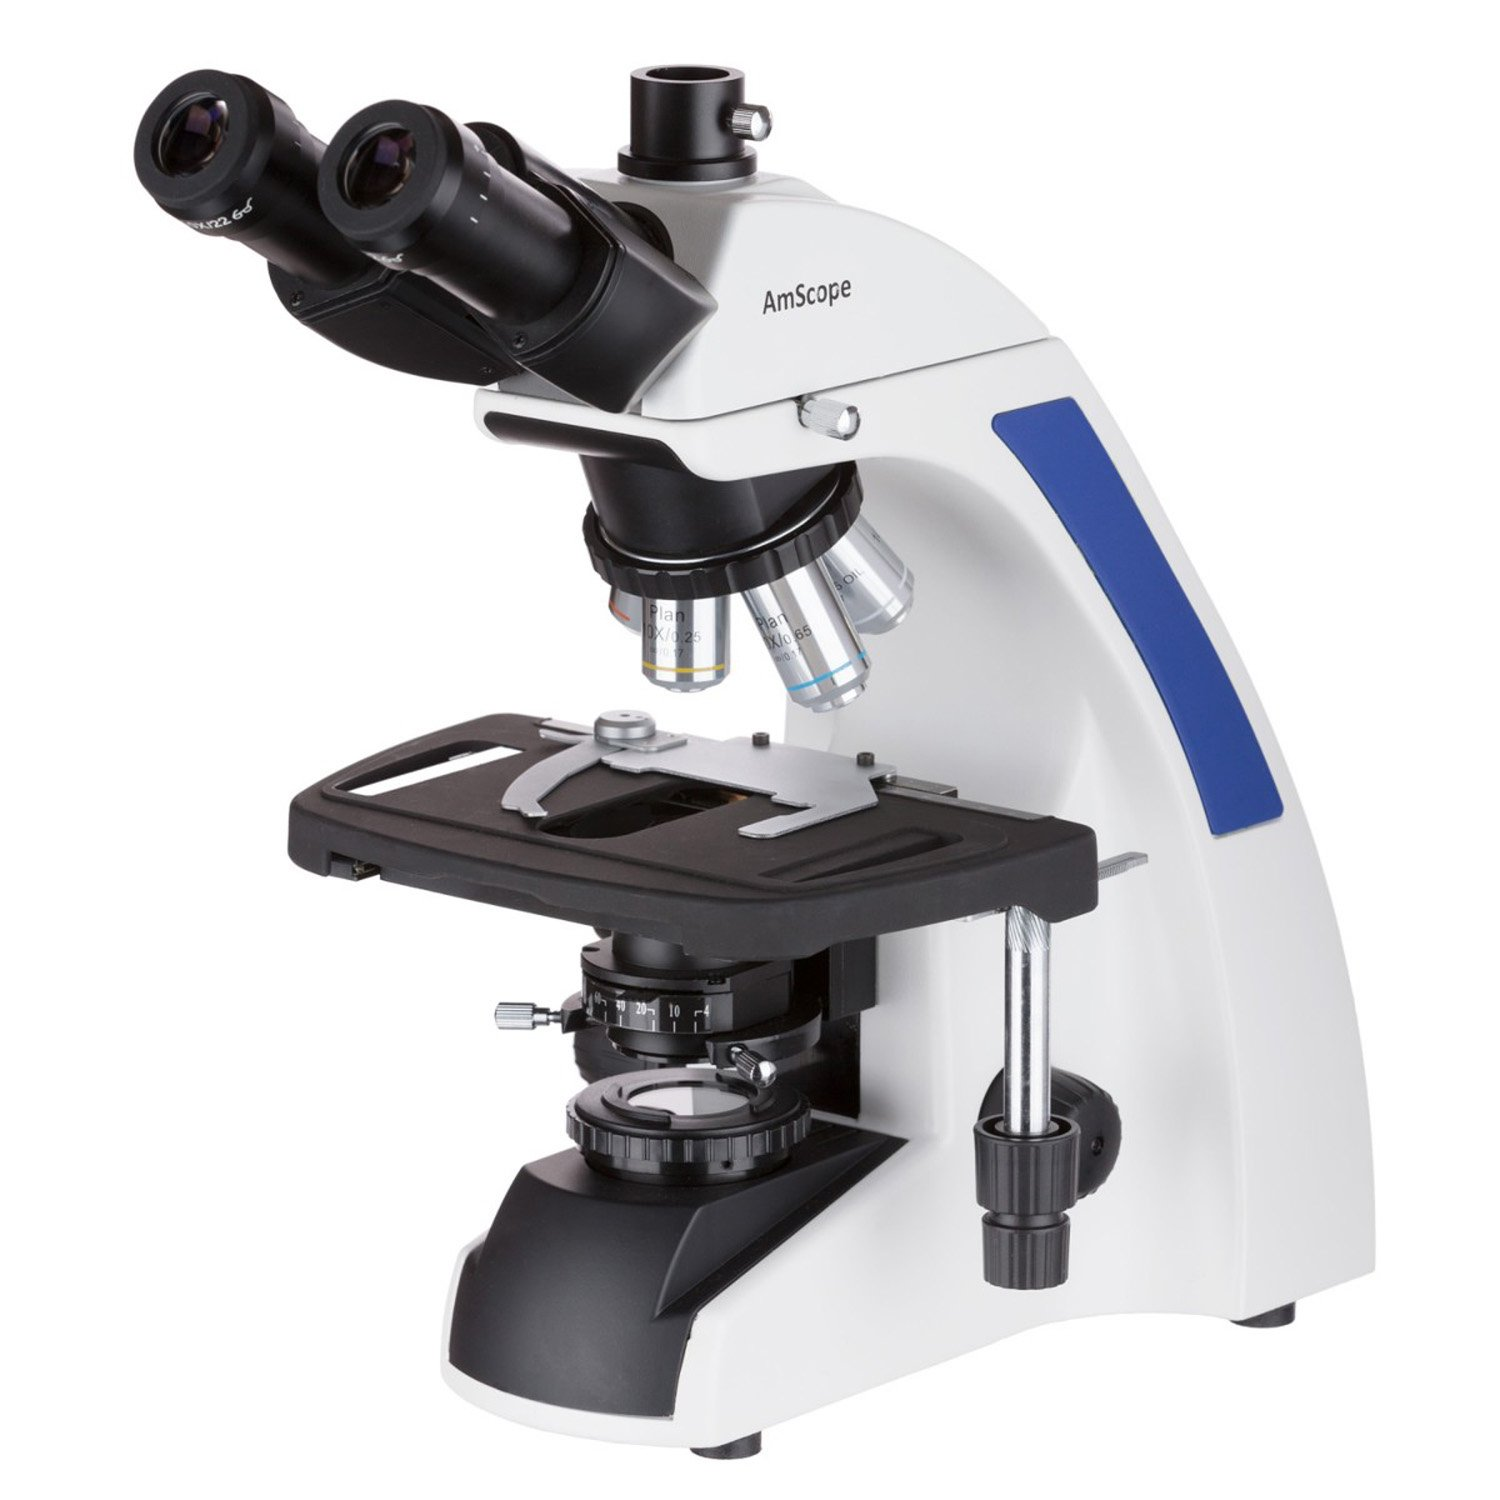 AmScope 40X-2500X Infinity Plan Laboratory Compound Microscope with LCD Touch Pad Screen